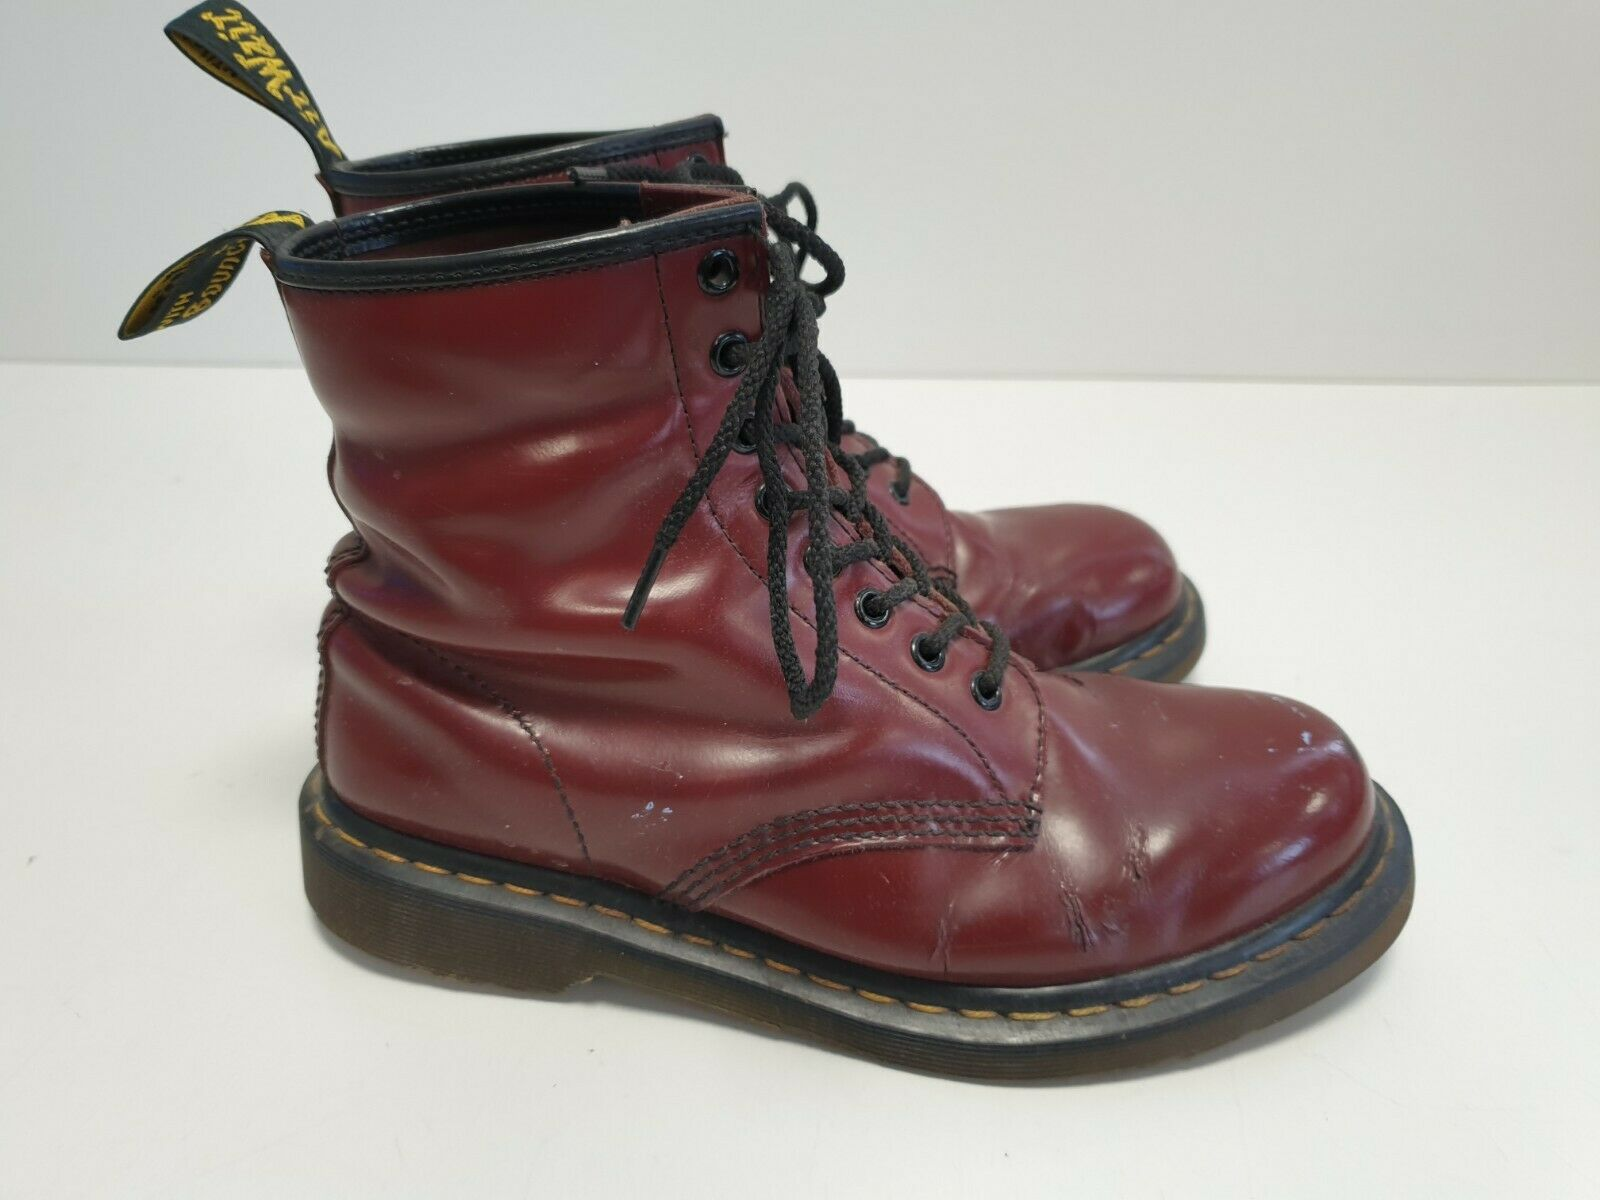 MENS Dr MARTENS SHINY RED LEATHER ROUND TOE COMBAT ANKLE BOOTS UK 7 EU 41